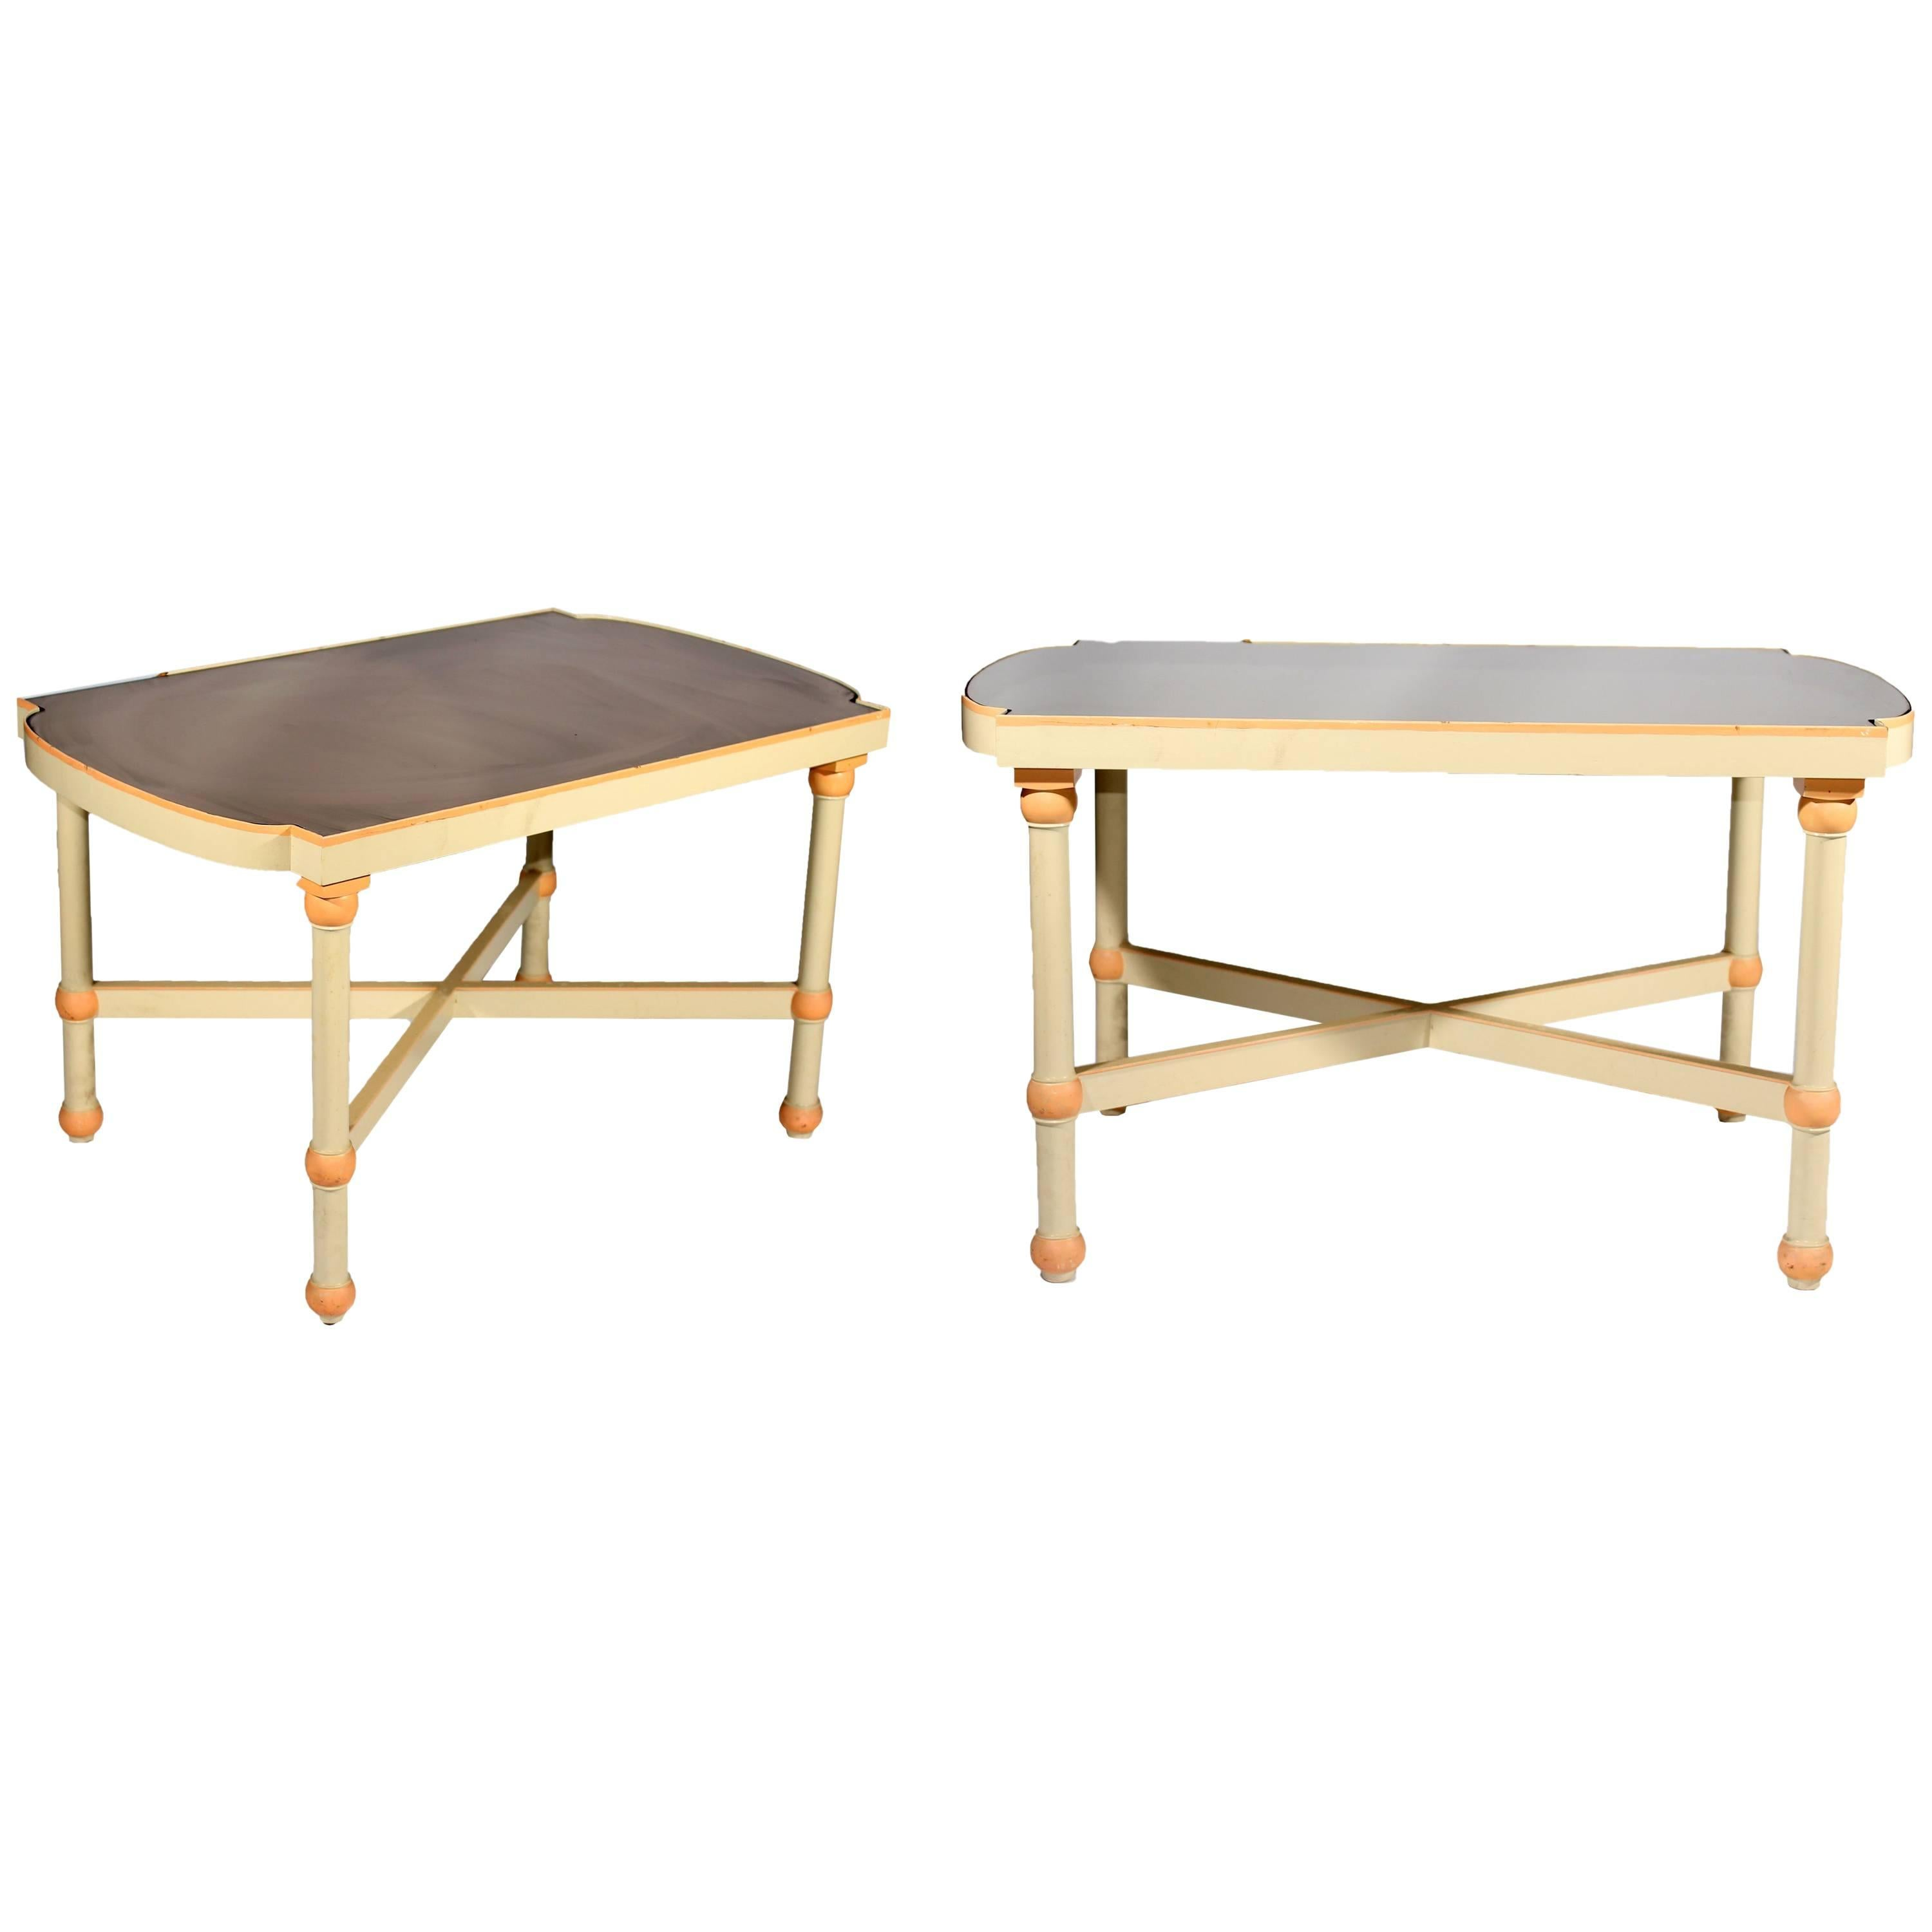 1970s Pair of Lacquered Side Tables Topped with a Smoked Glass Mirror